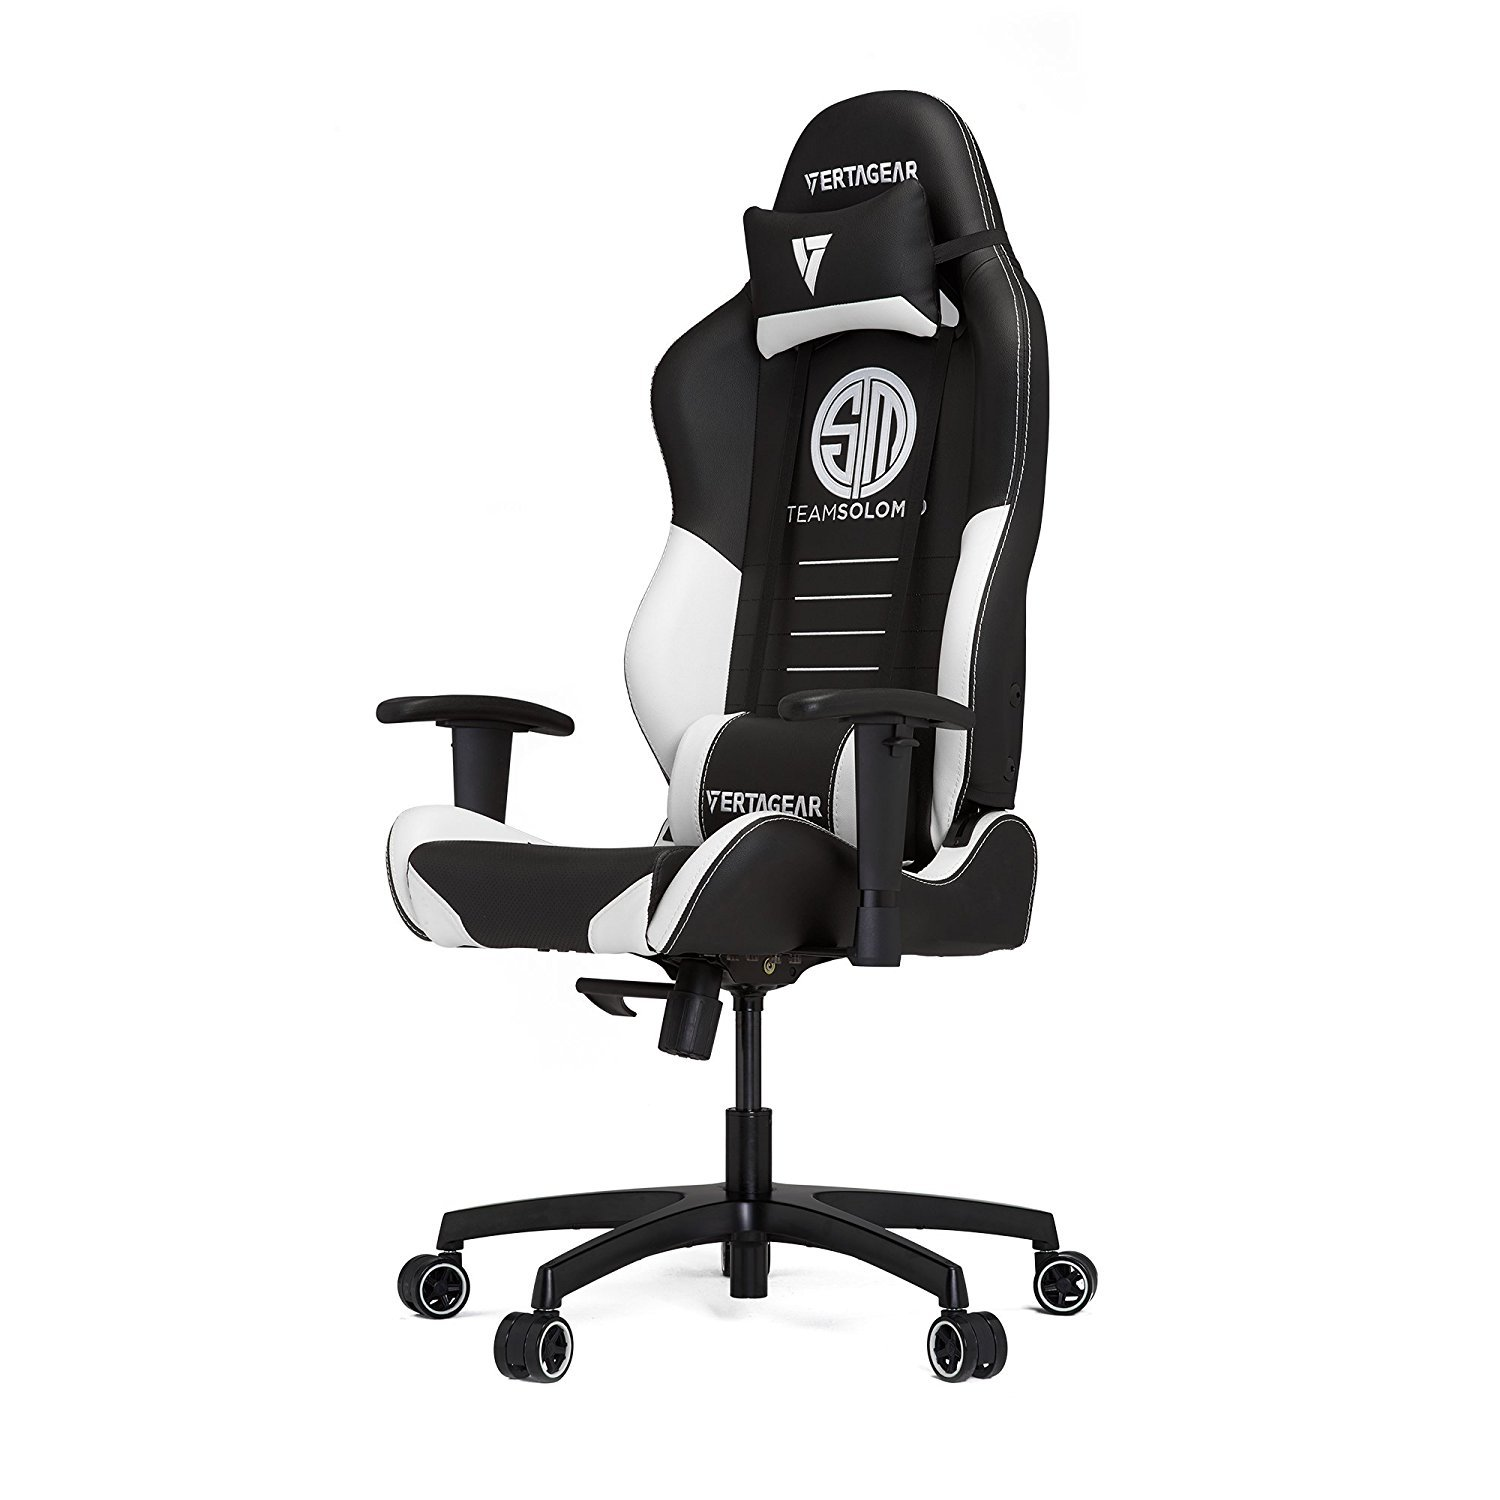 Image Result For Gaming Chair Tsm